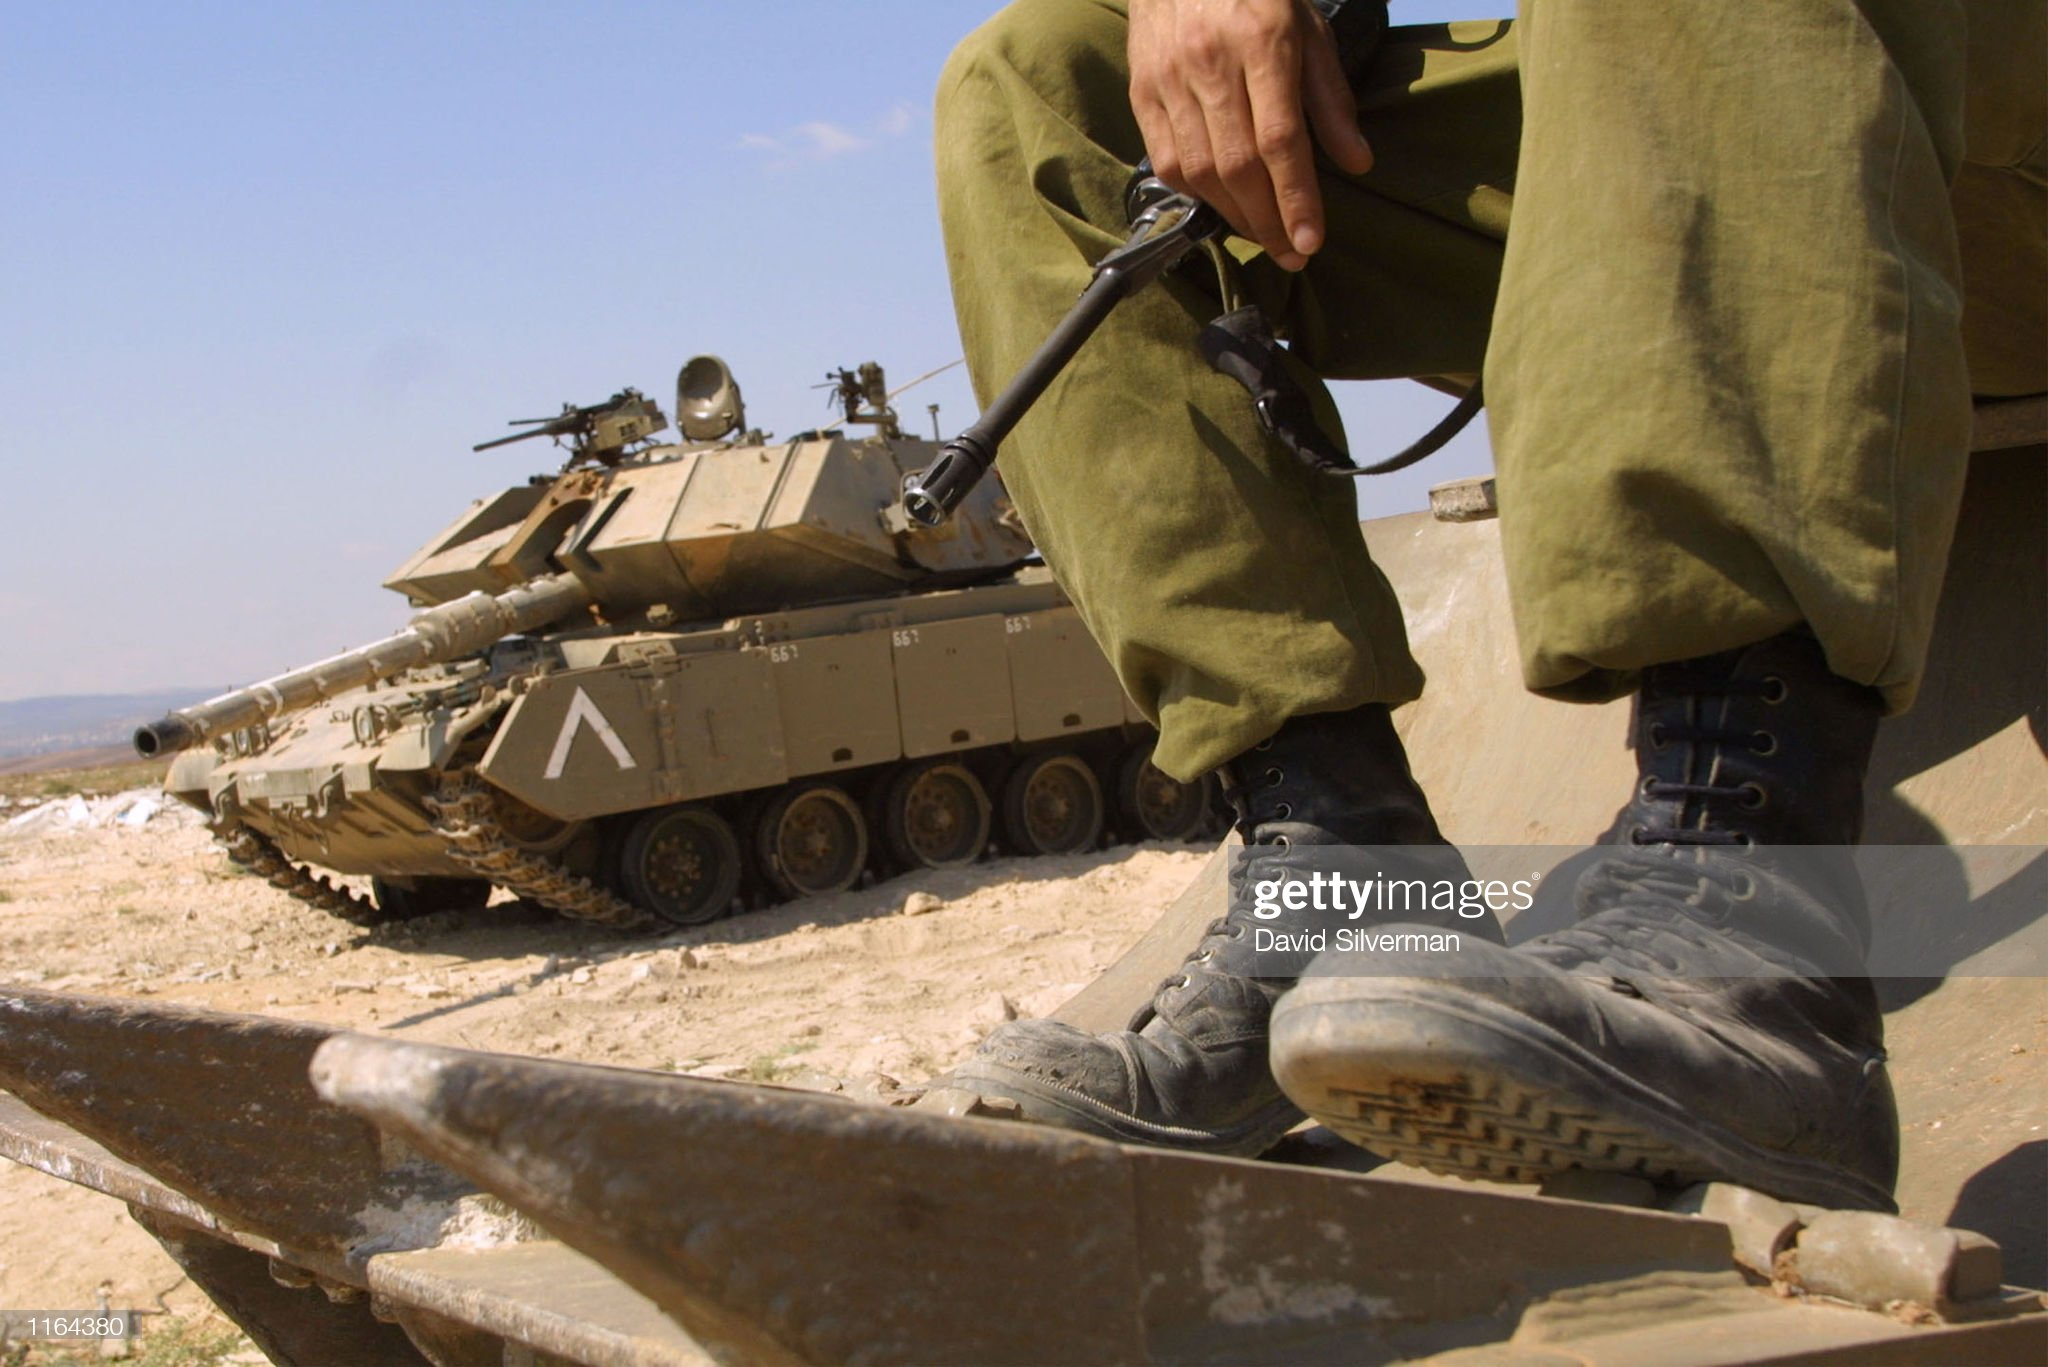 https://media.gettyimages.com/photos/an-israeli-soldier-remains-on-guard-on-an-armored-personnel-carrier-picture-id1164380?s=2048x2048